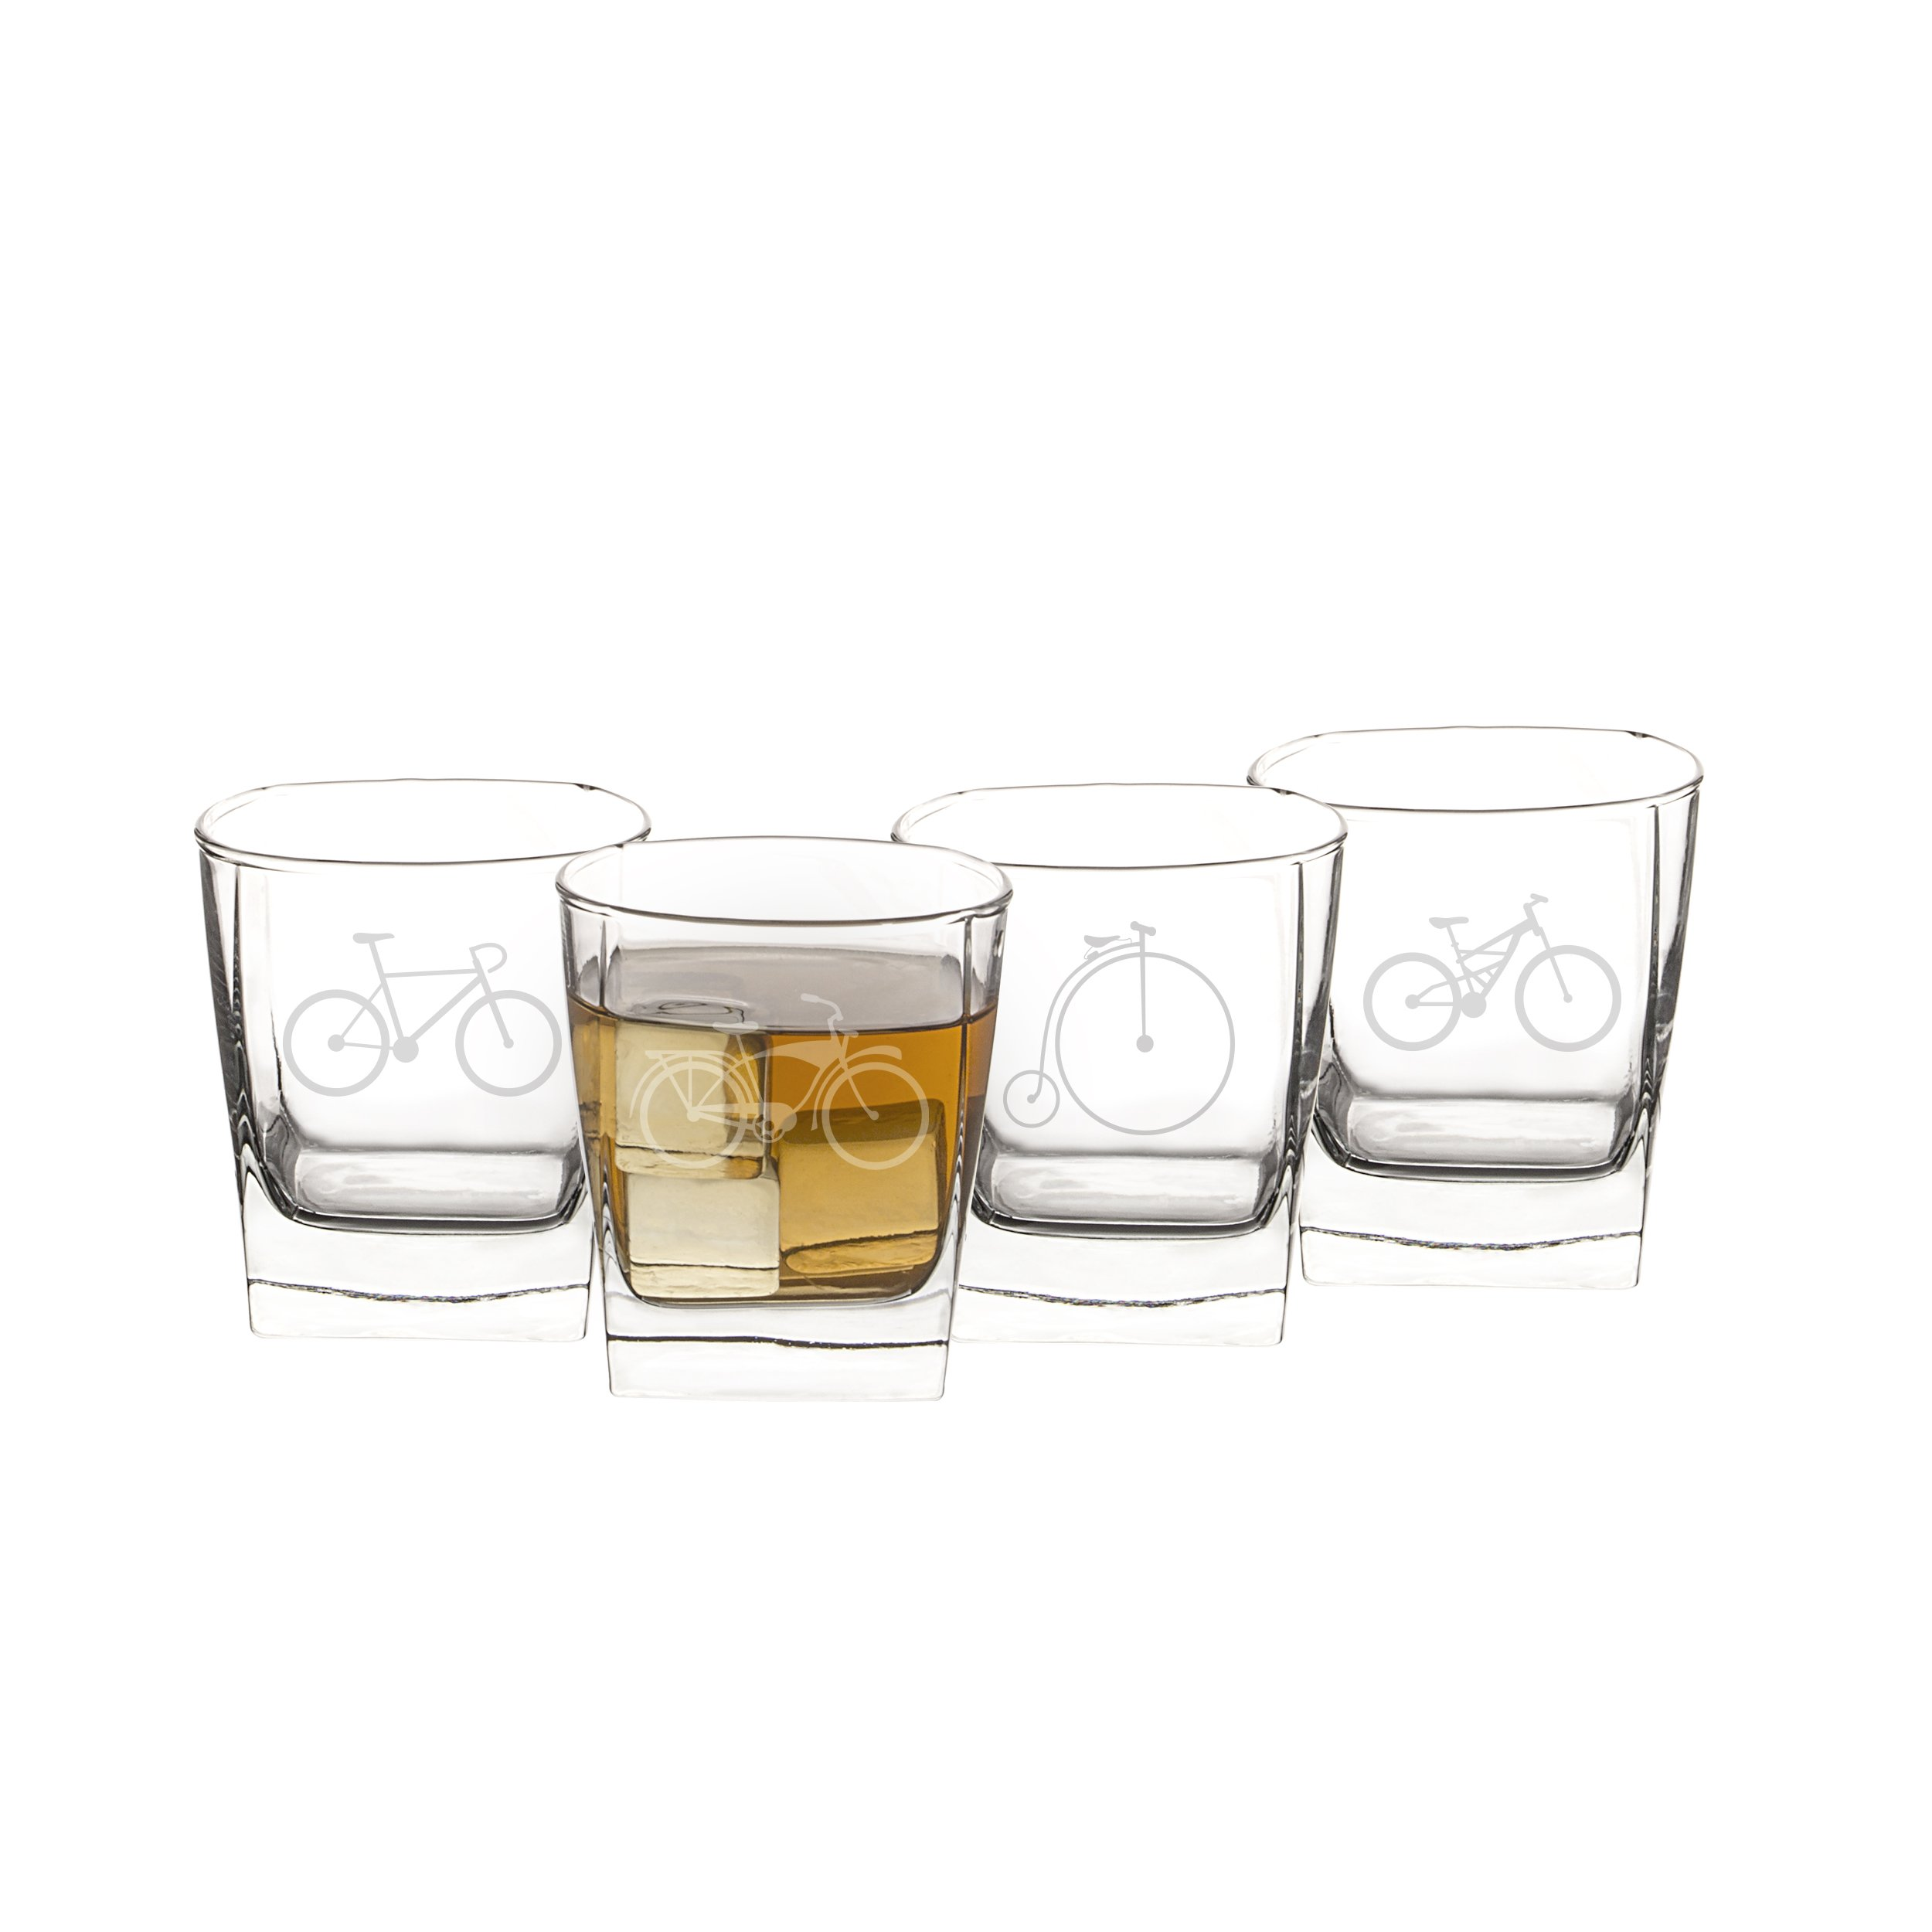 Cathy's Concepts Bicycle Rocks Glasses (Set of 4) by Cathy's Concepts (Image #2)